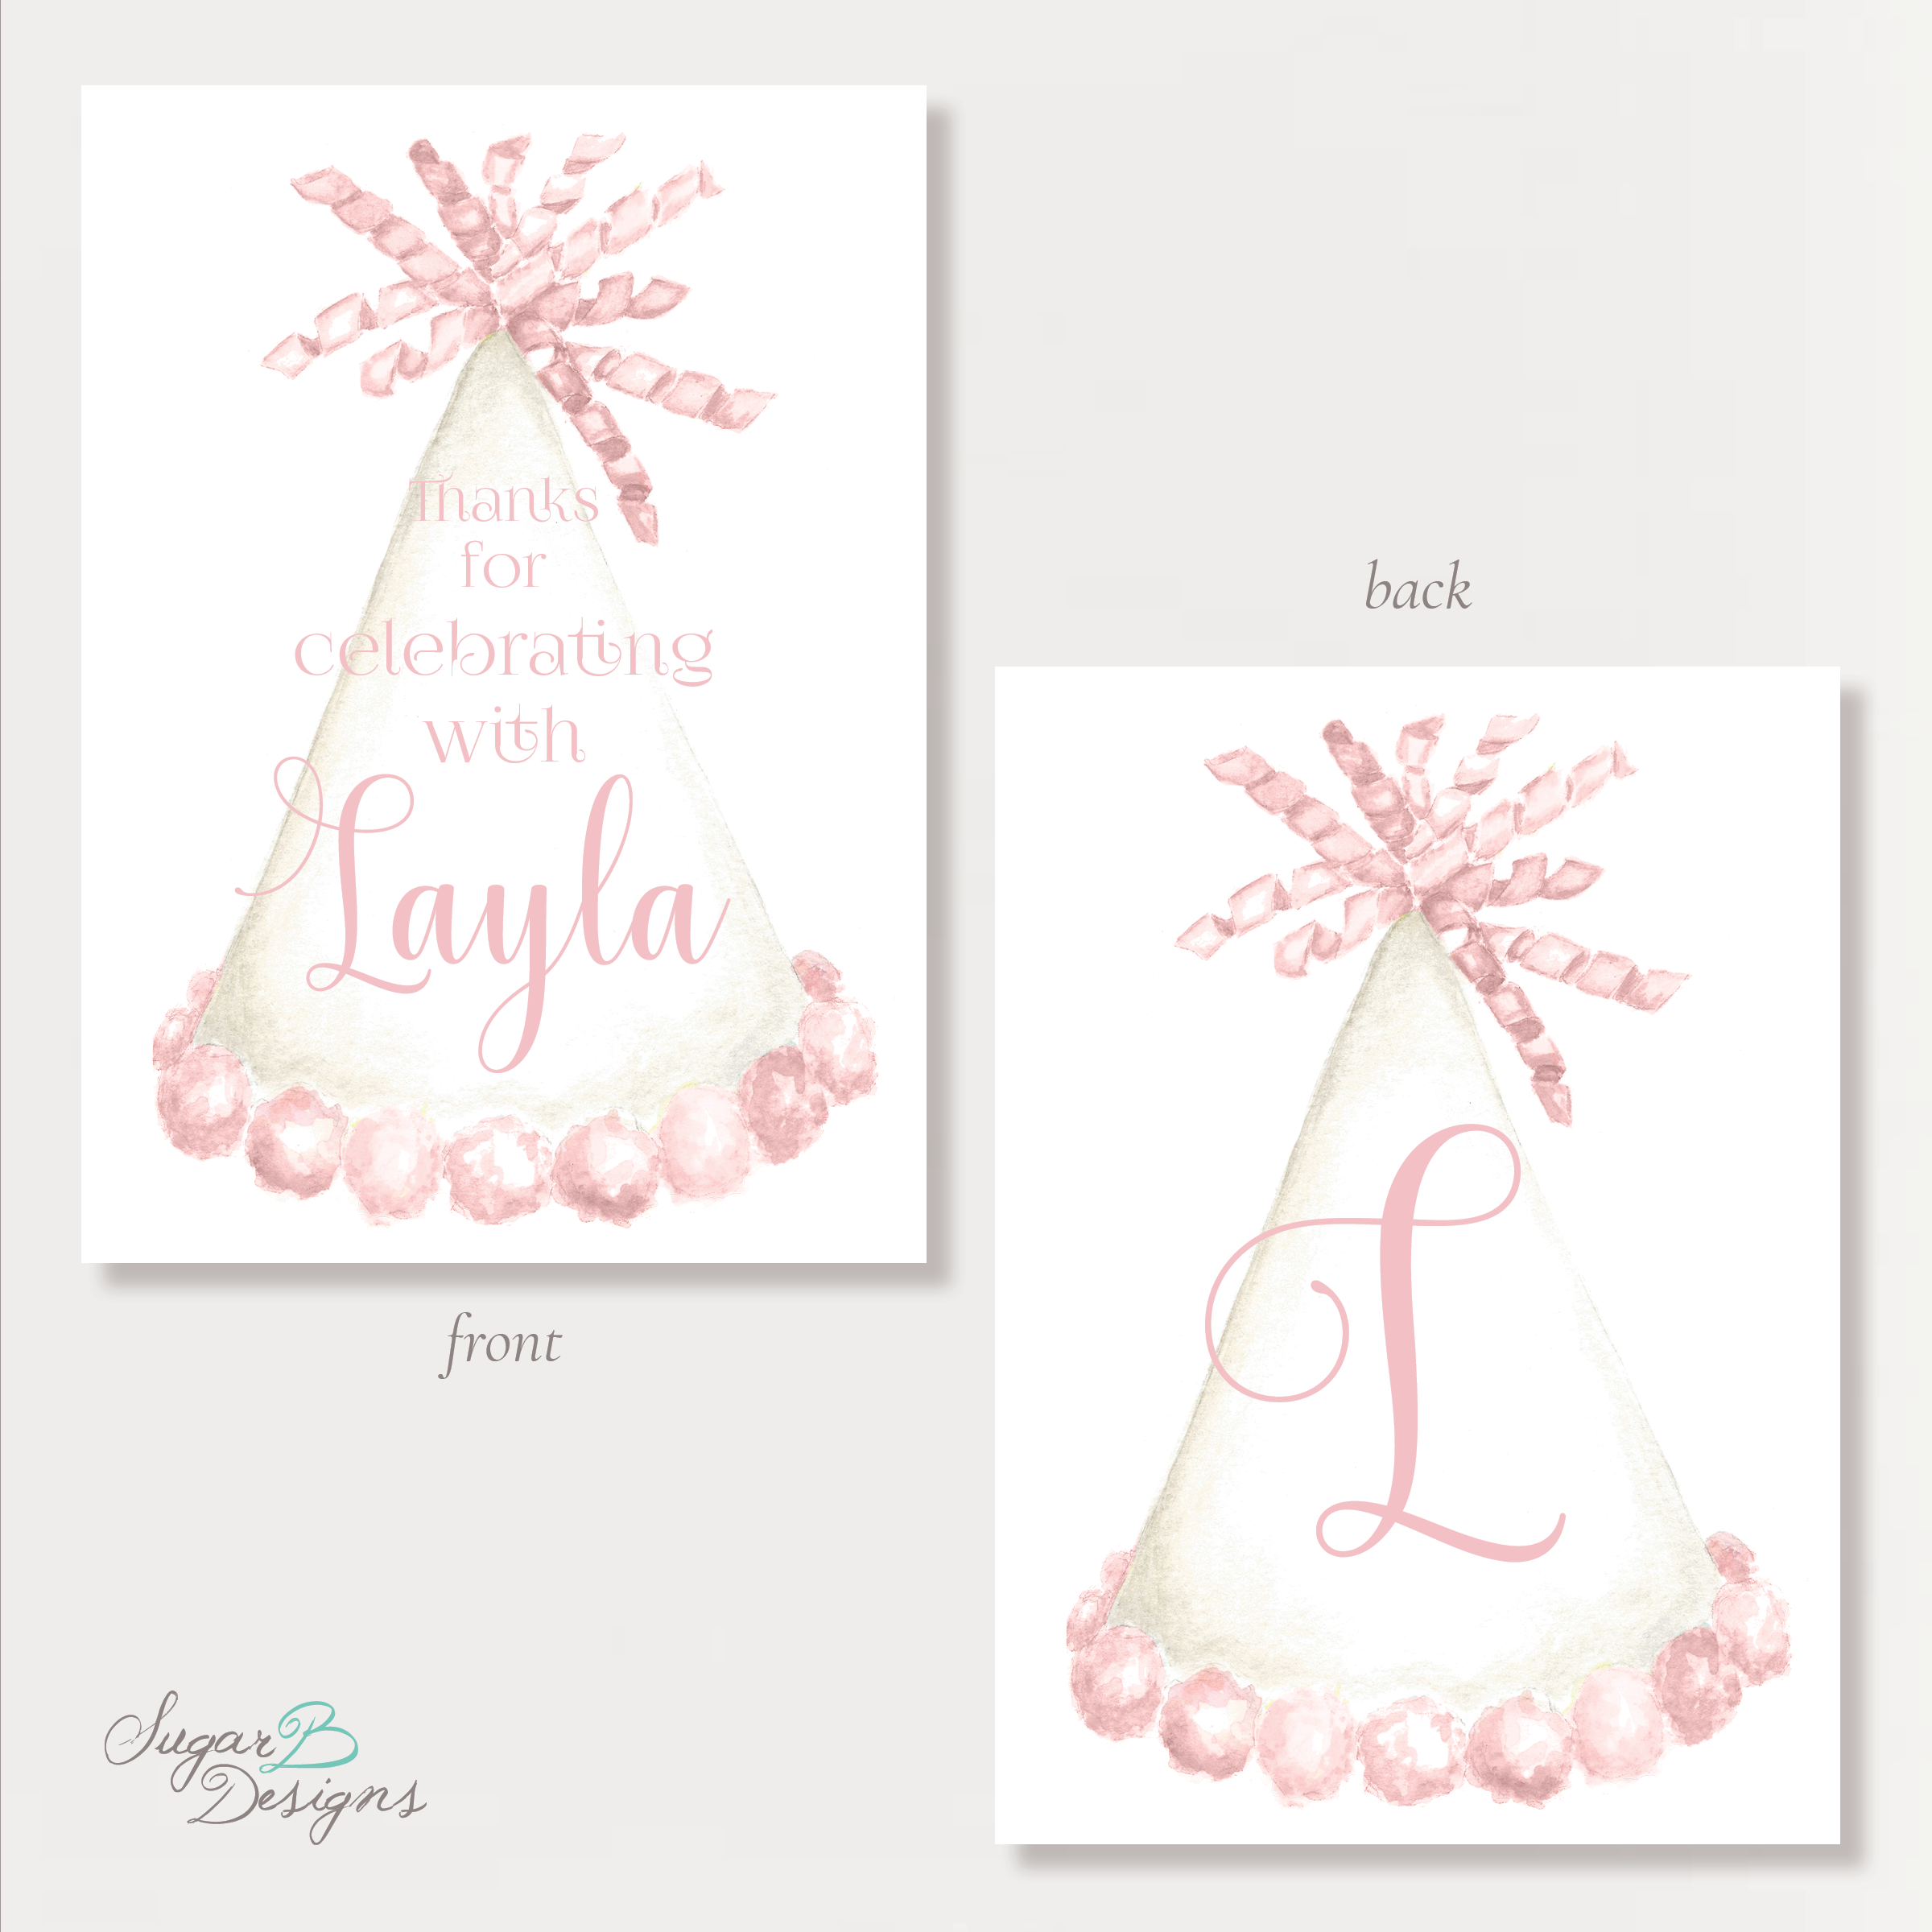 Party Hat Light Pink Gift Tags by Sugar B Designs